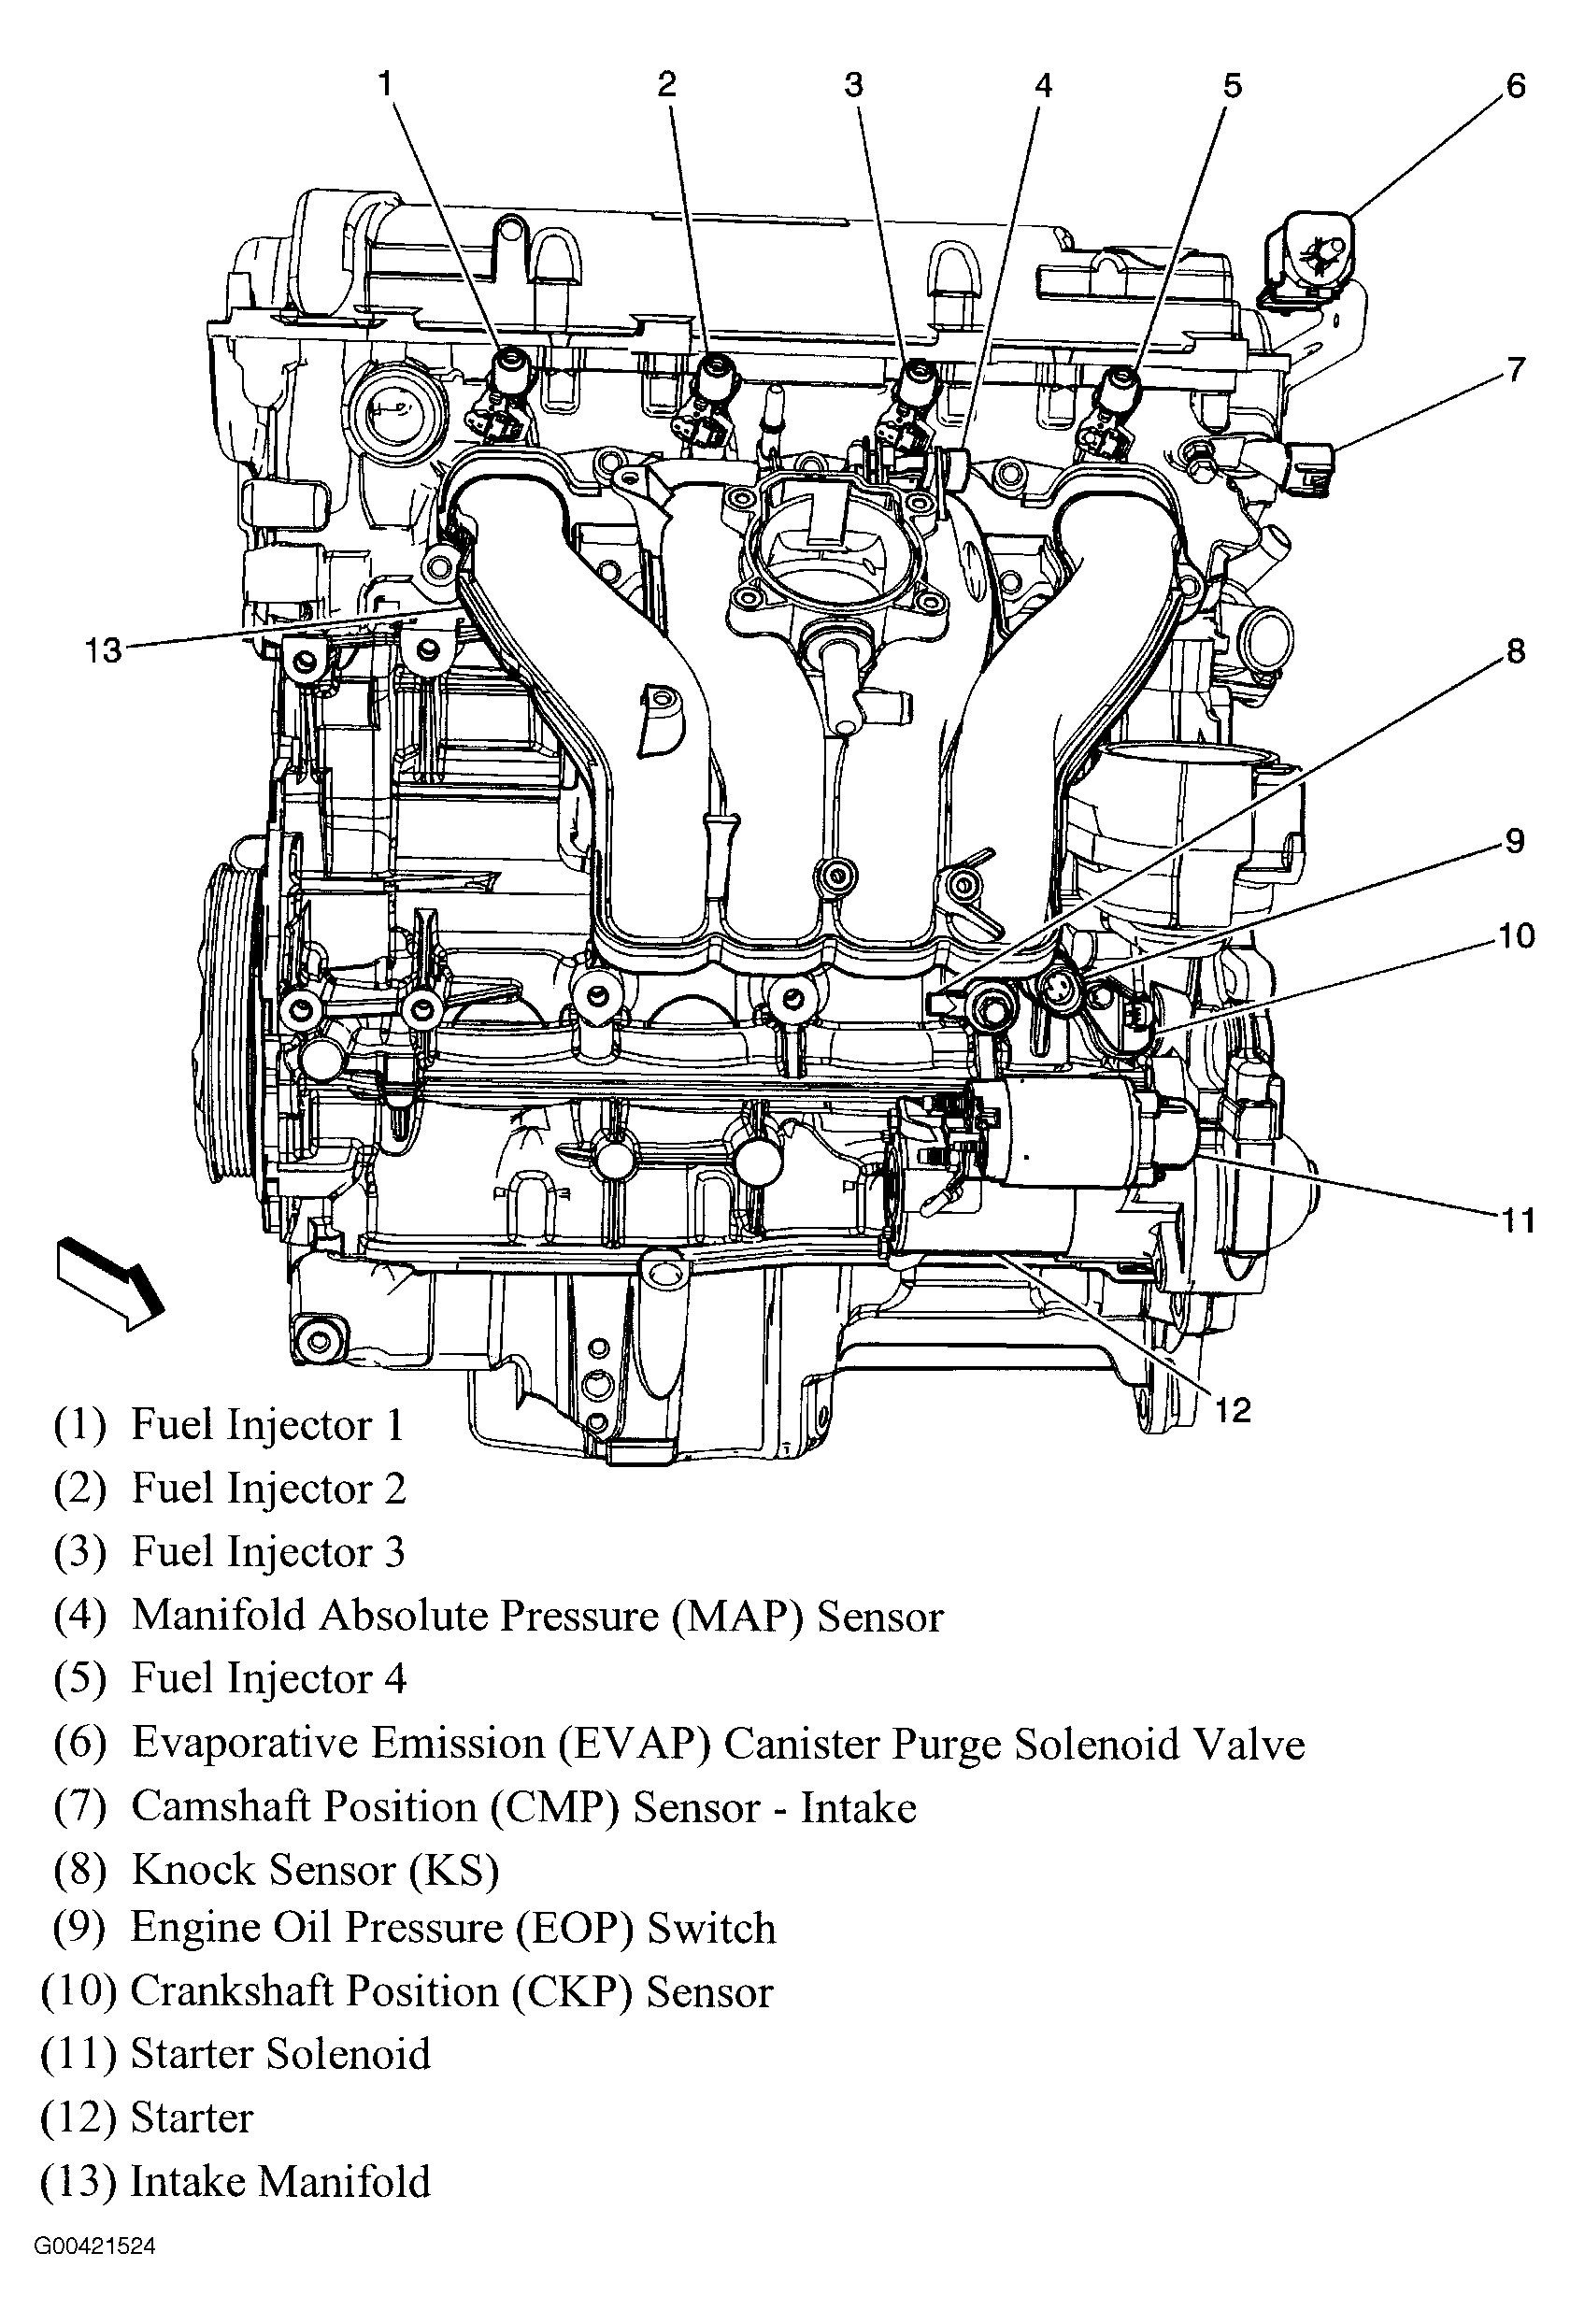 Gmc Engine Parts Diagram Guide And Troubleshooting Of Wiring 350 Chevy Block Todays Rh 14 8 9 1813weddingbarn Com Acadia Truck